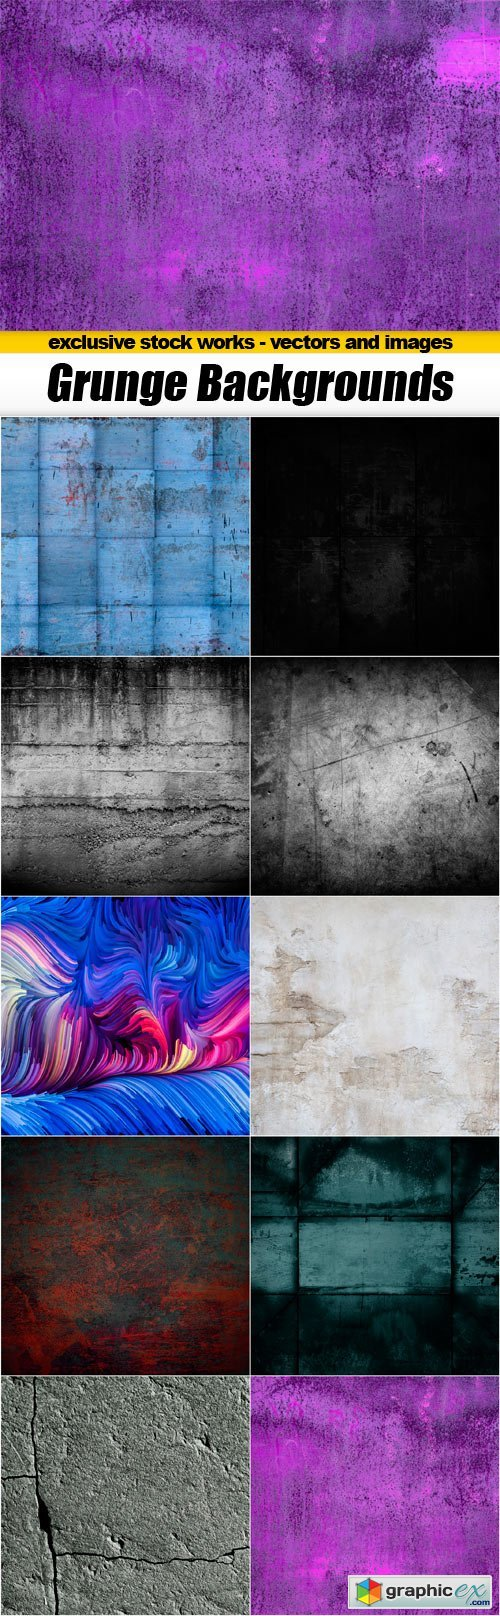 Grunge Backgrounds - 10x JPEGs